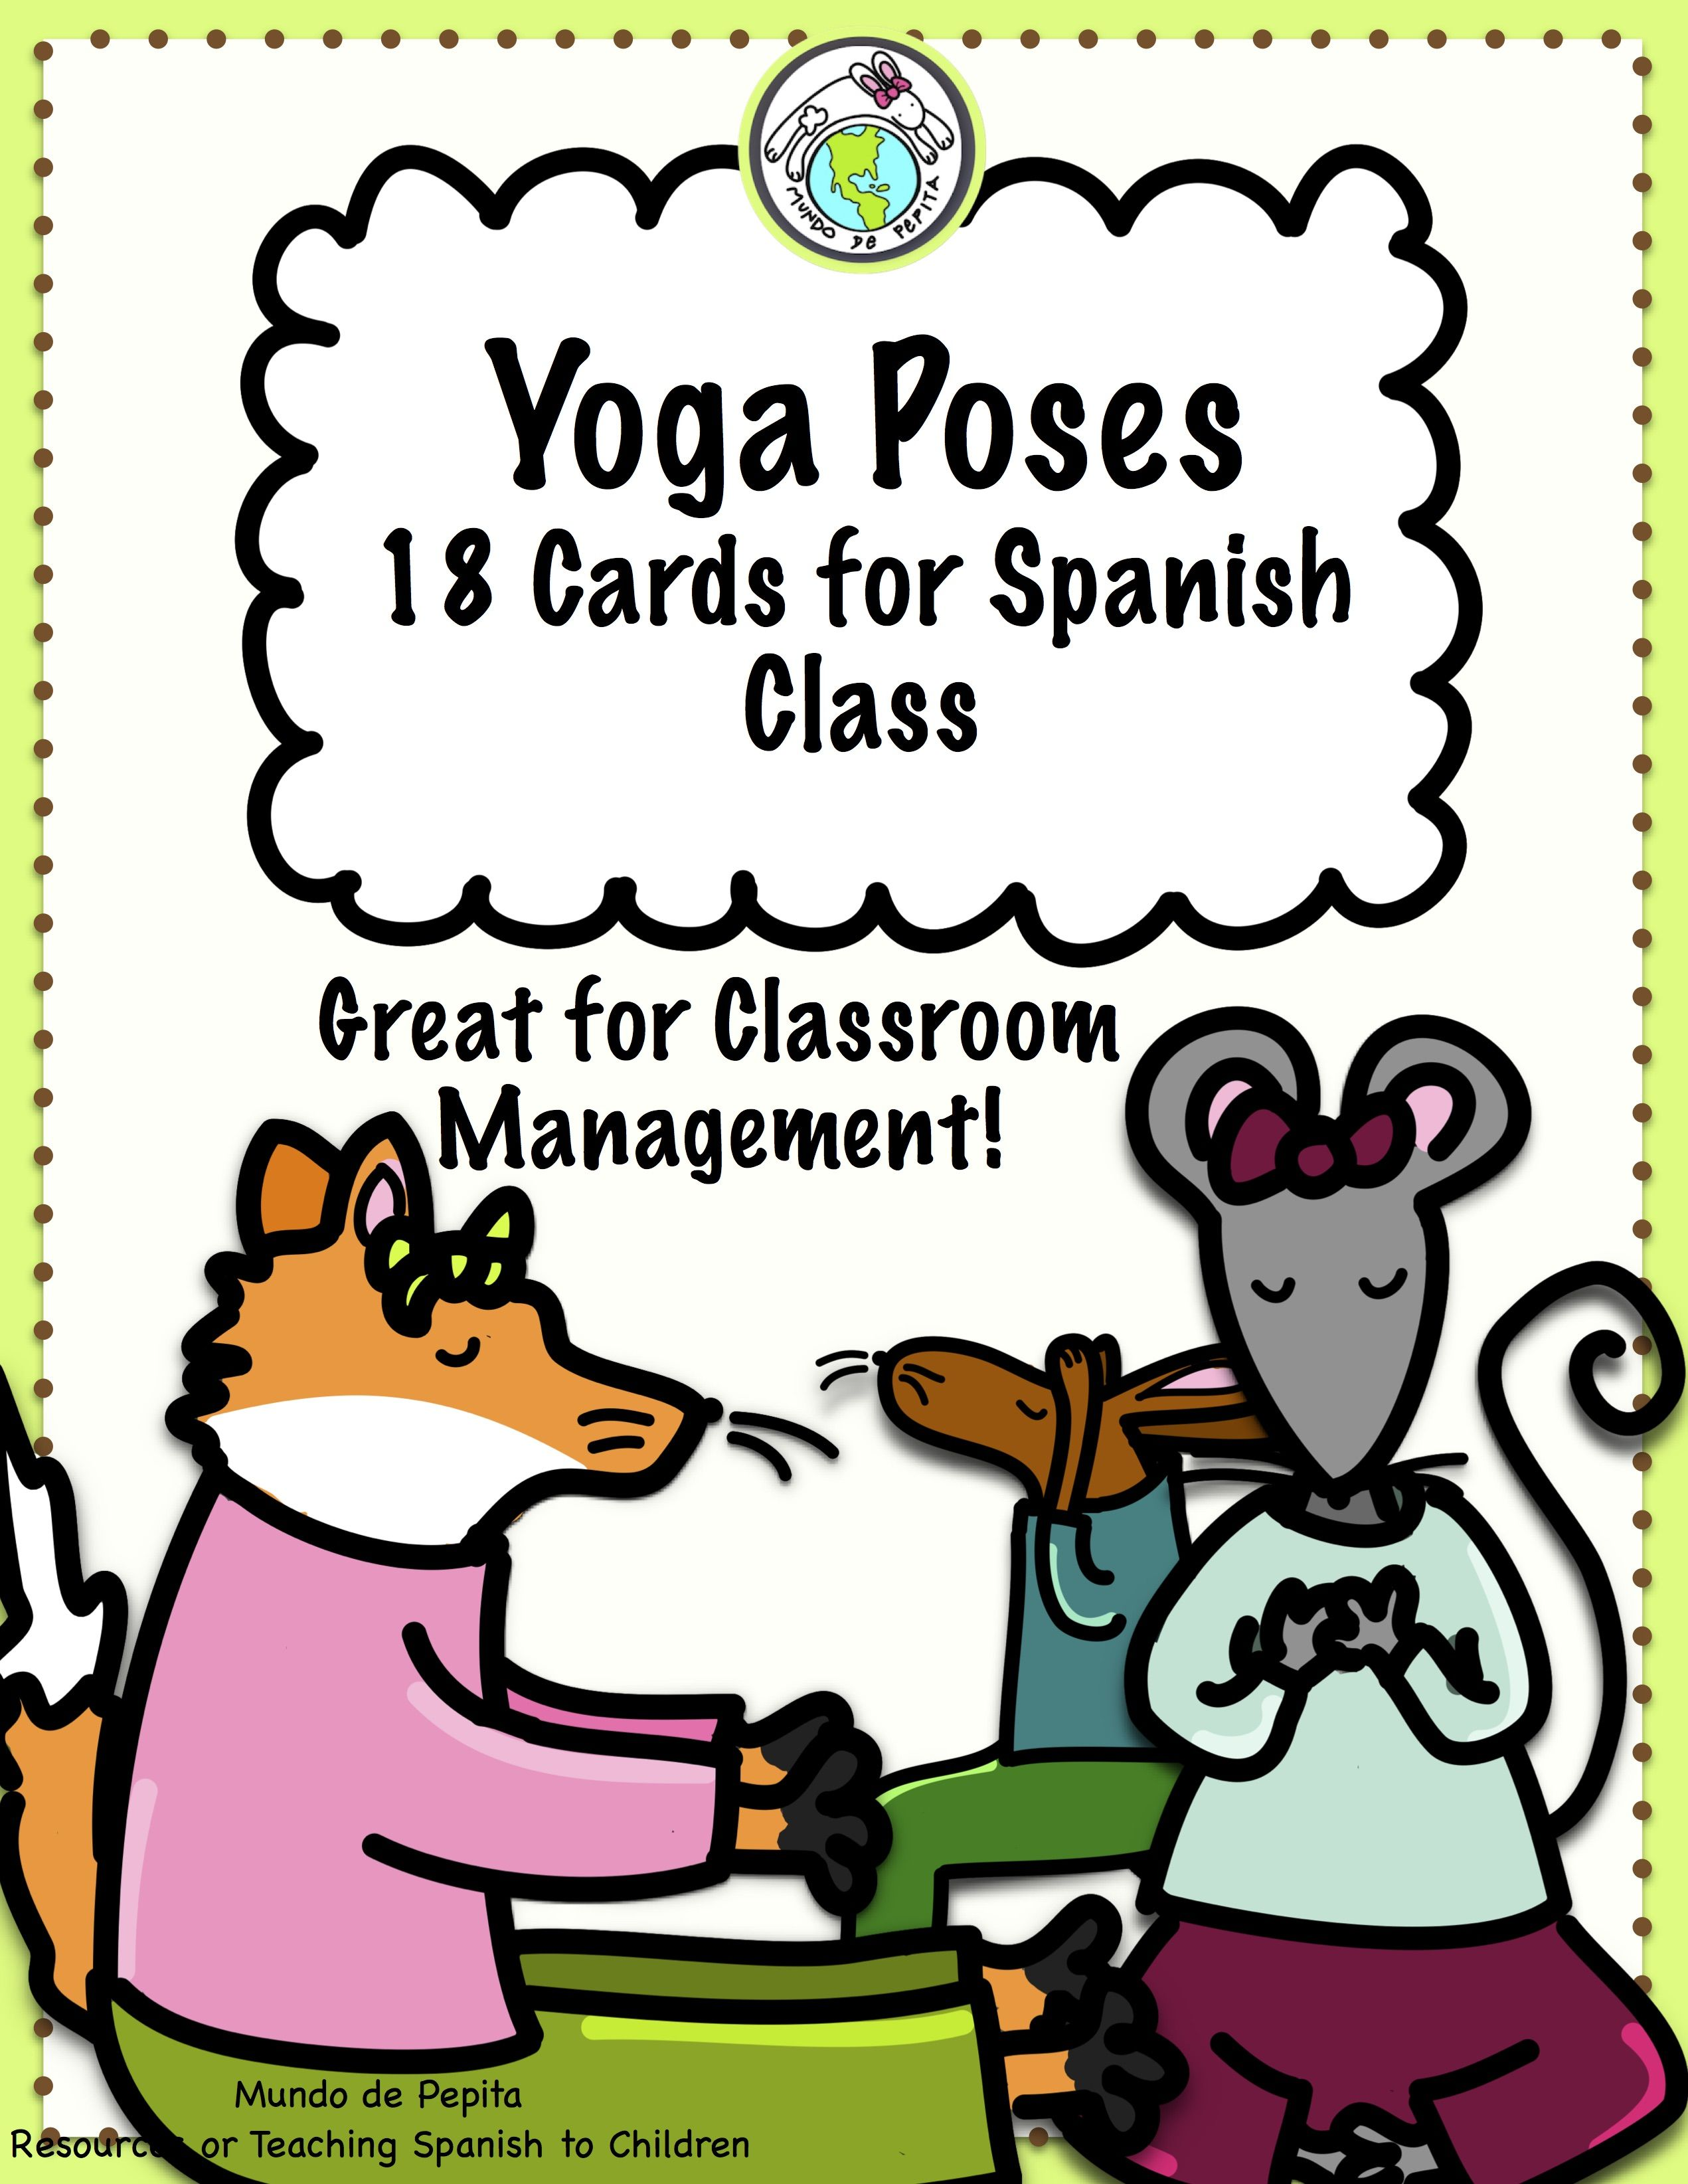 Yoga Poses For Spanish Class 18 Printable Cards With Images Spanish Lessons For Kids Learning Spanish For Kids Learning Spanish